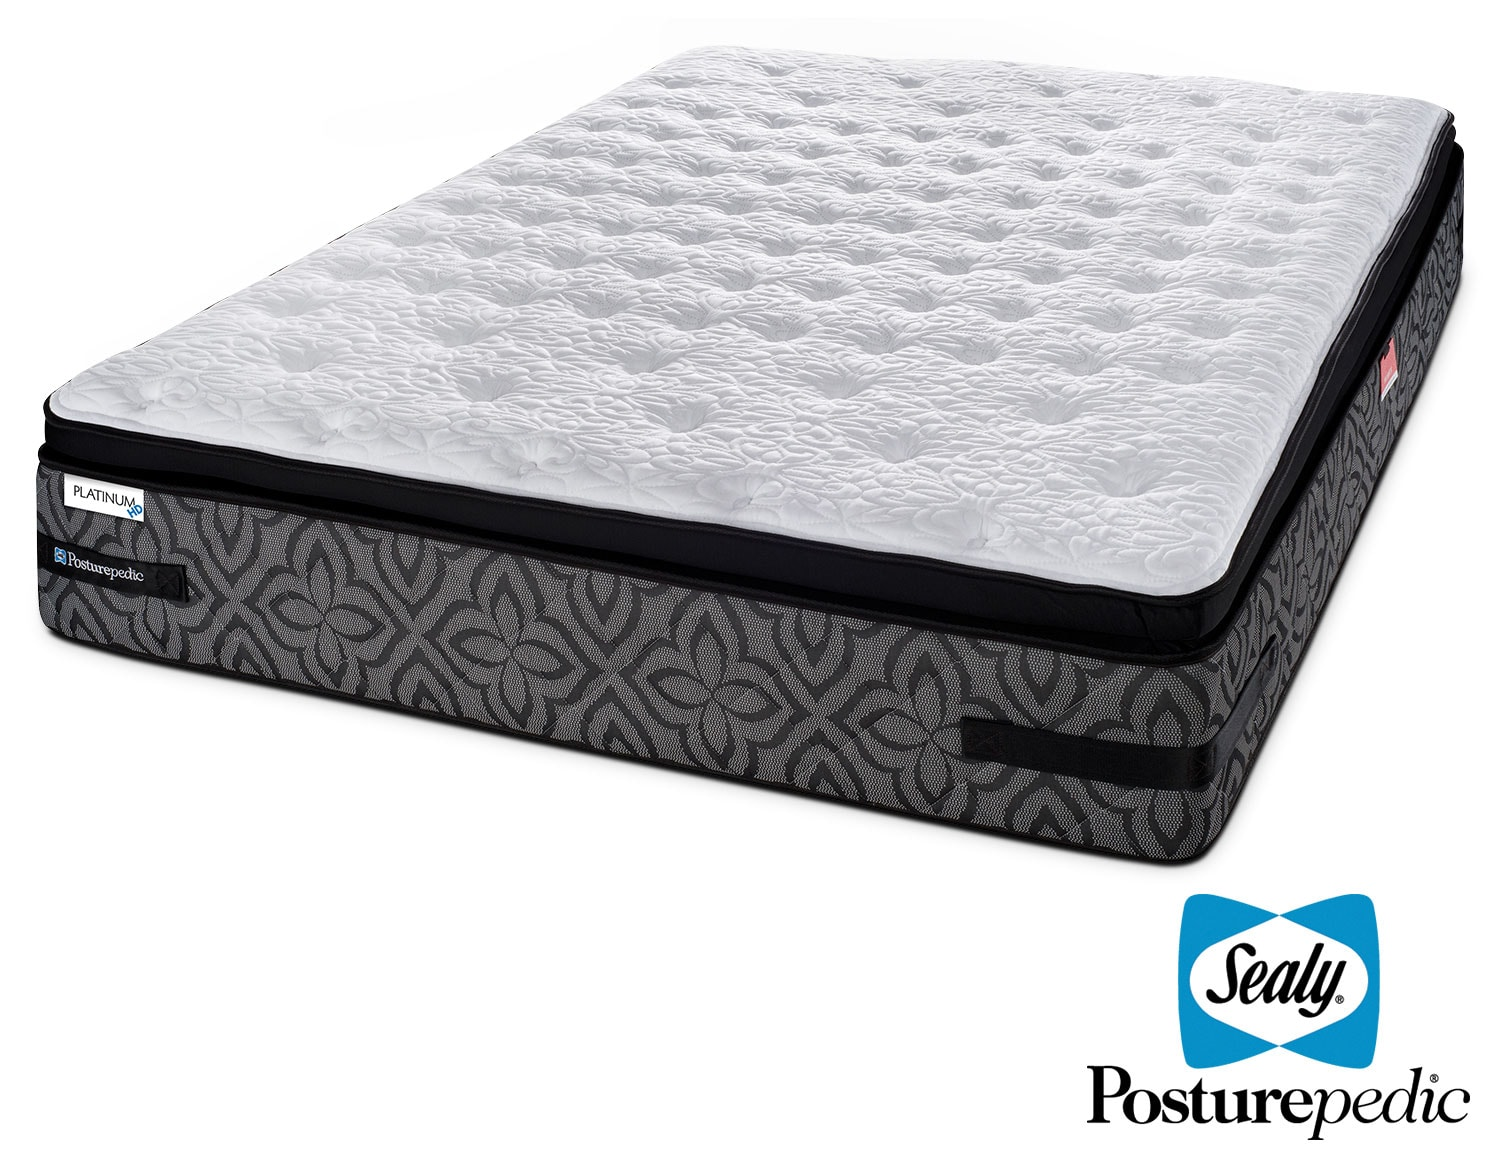 Sealy Posturepedic 2 K Firm Queen Mattress